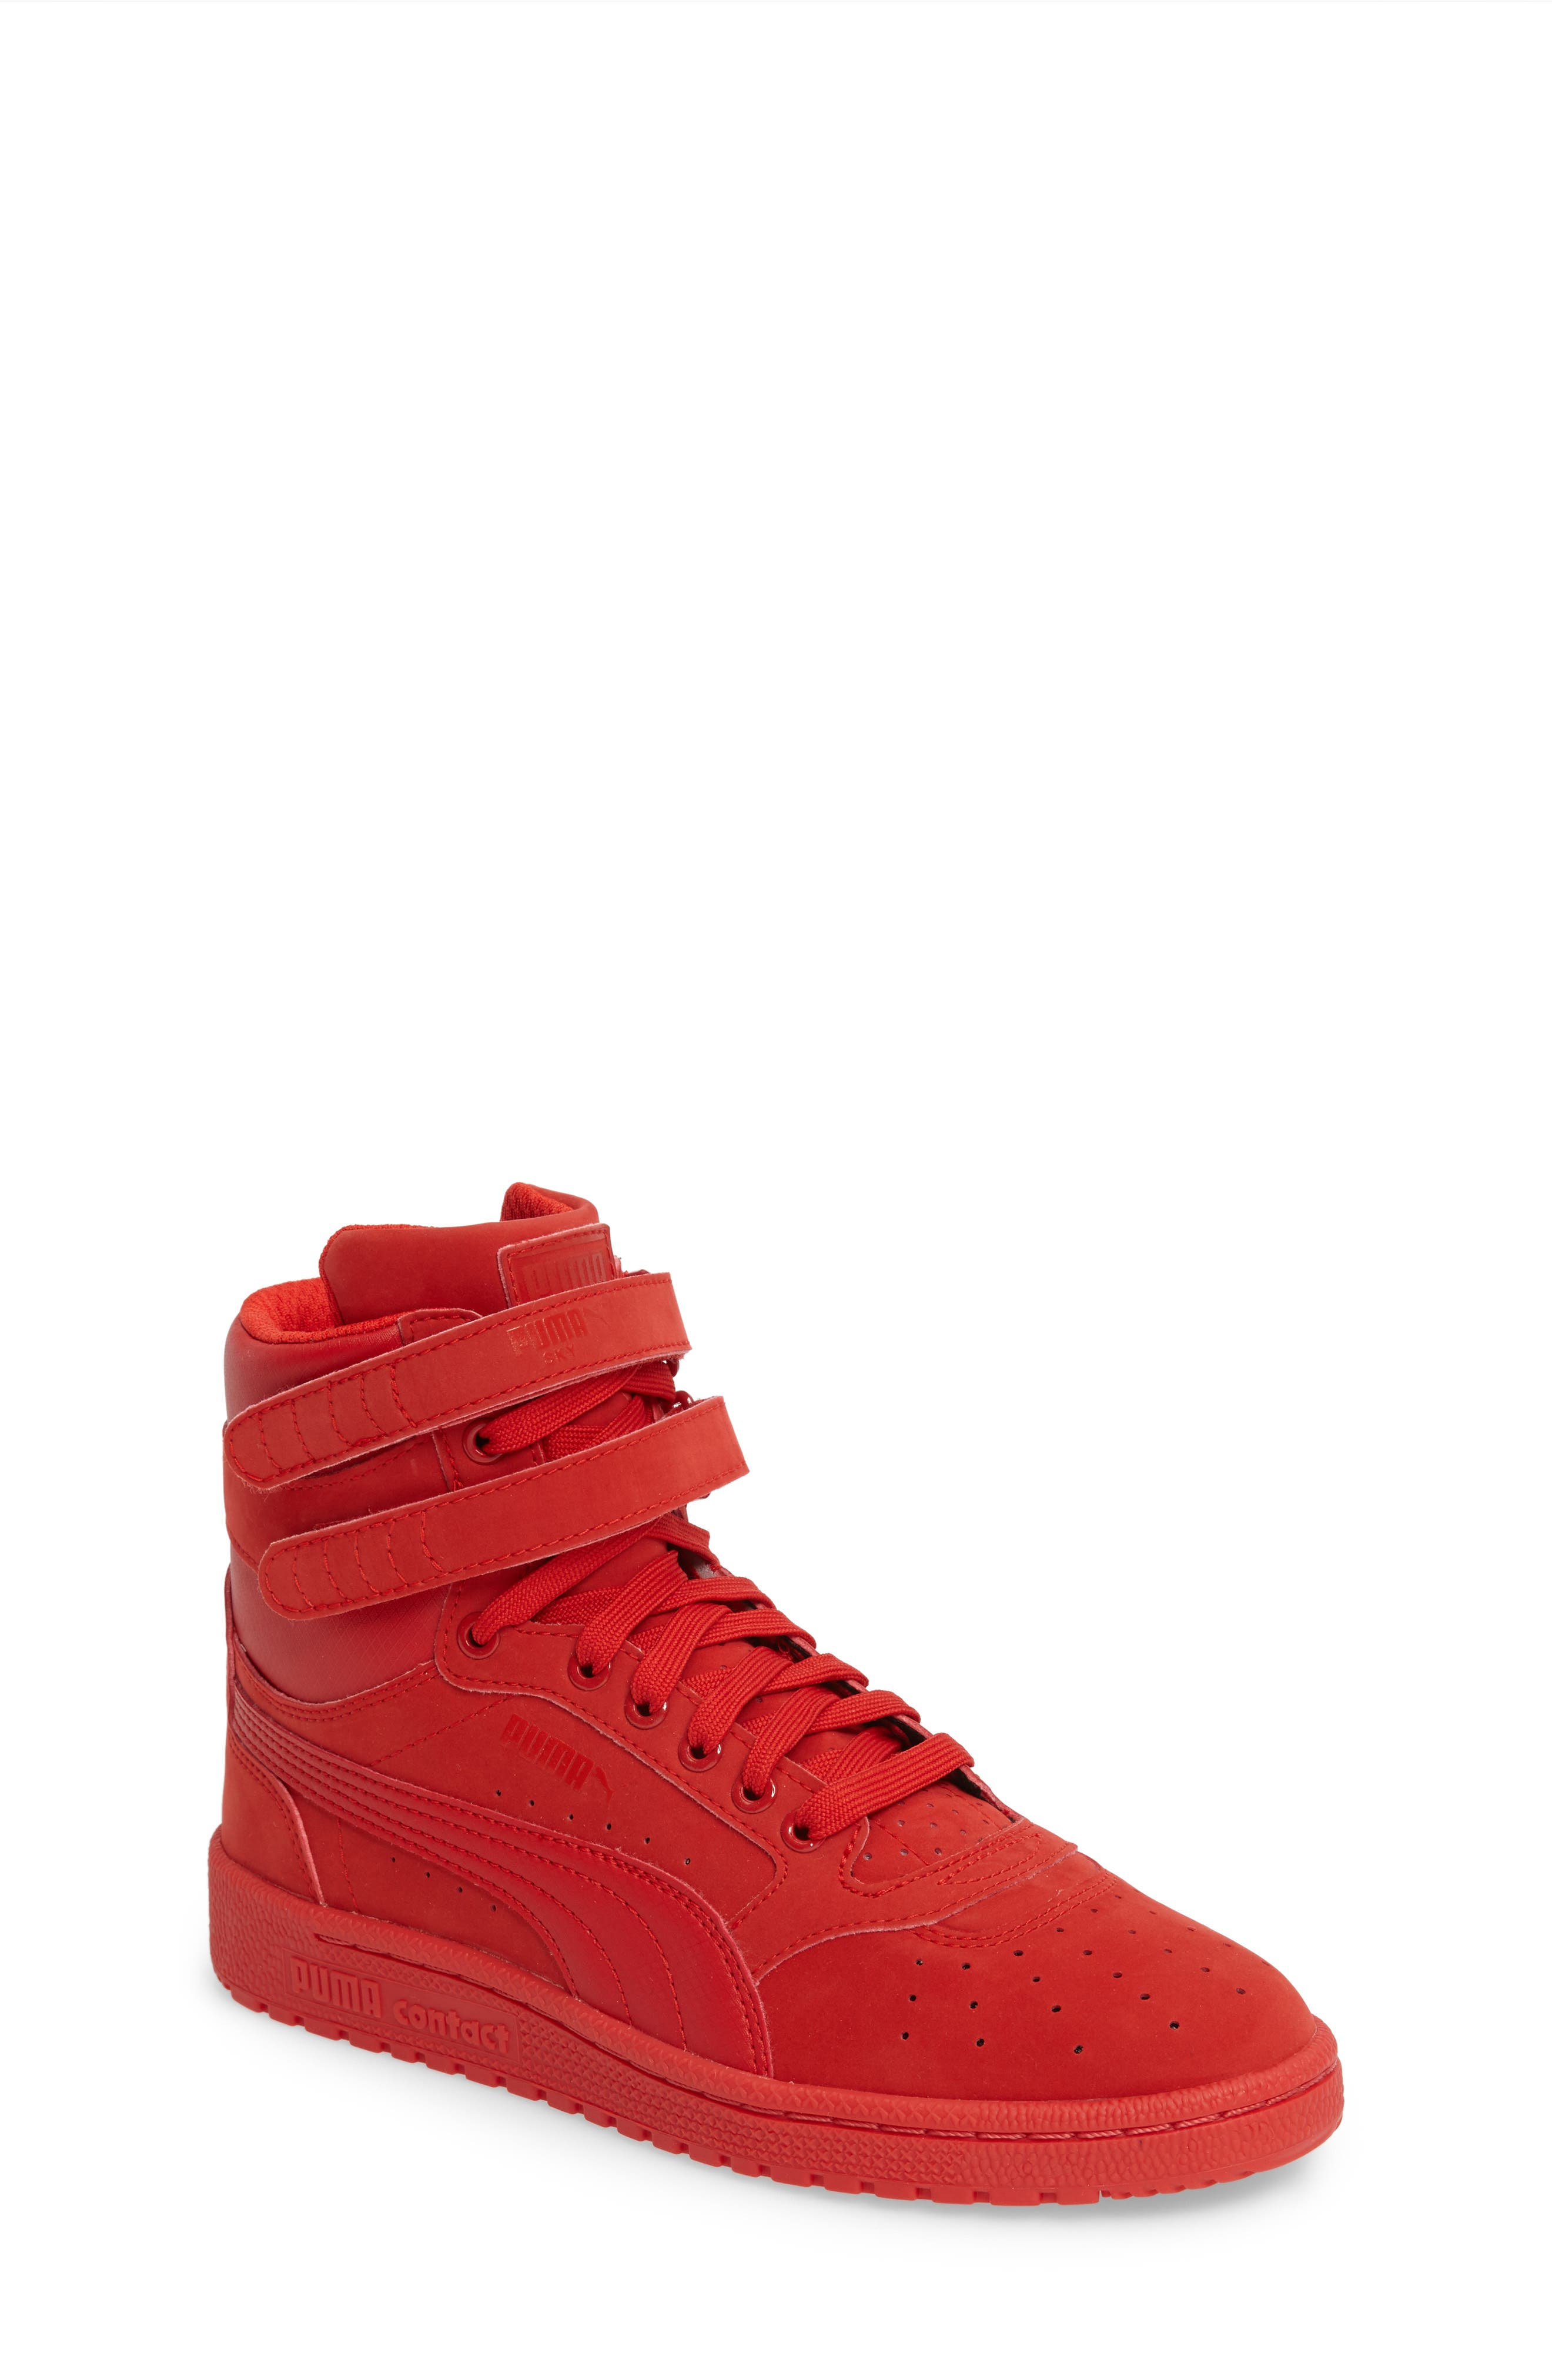 Main Image - PUMA Ski II High Top Sneaker (Big Kid)